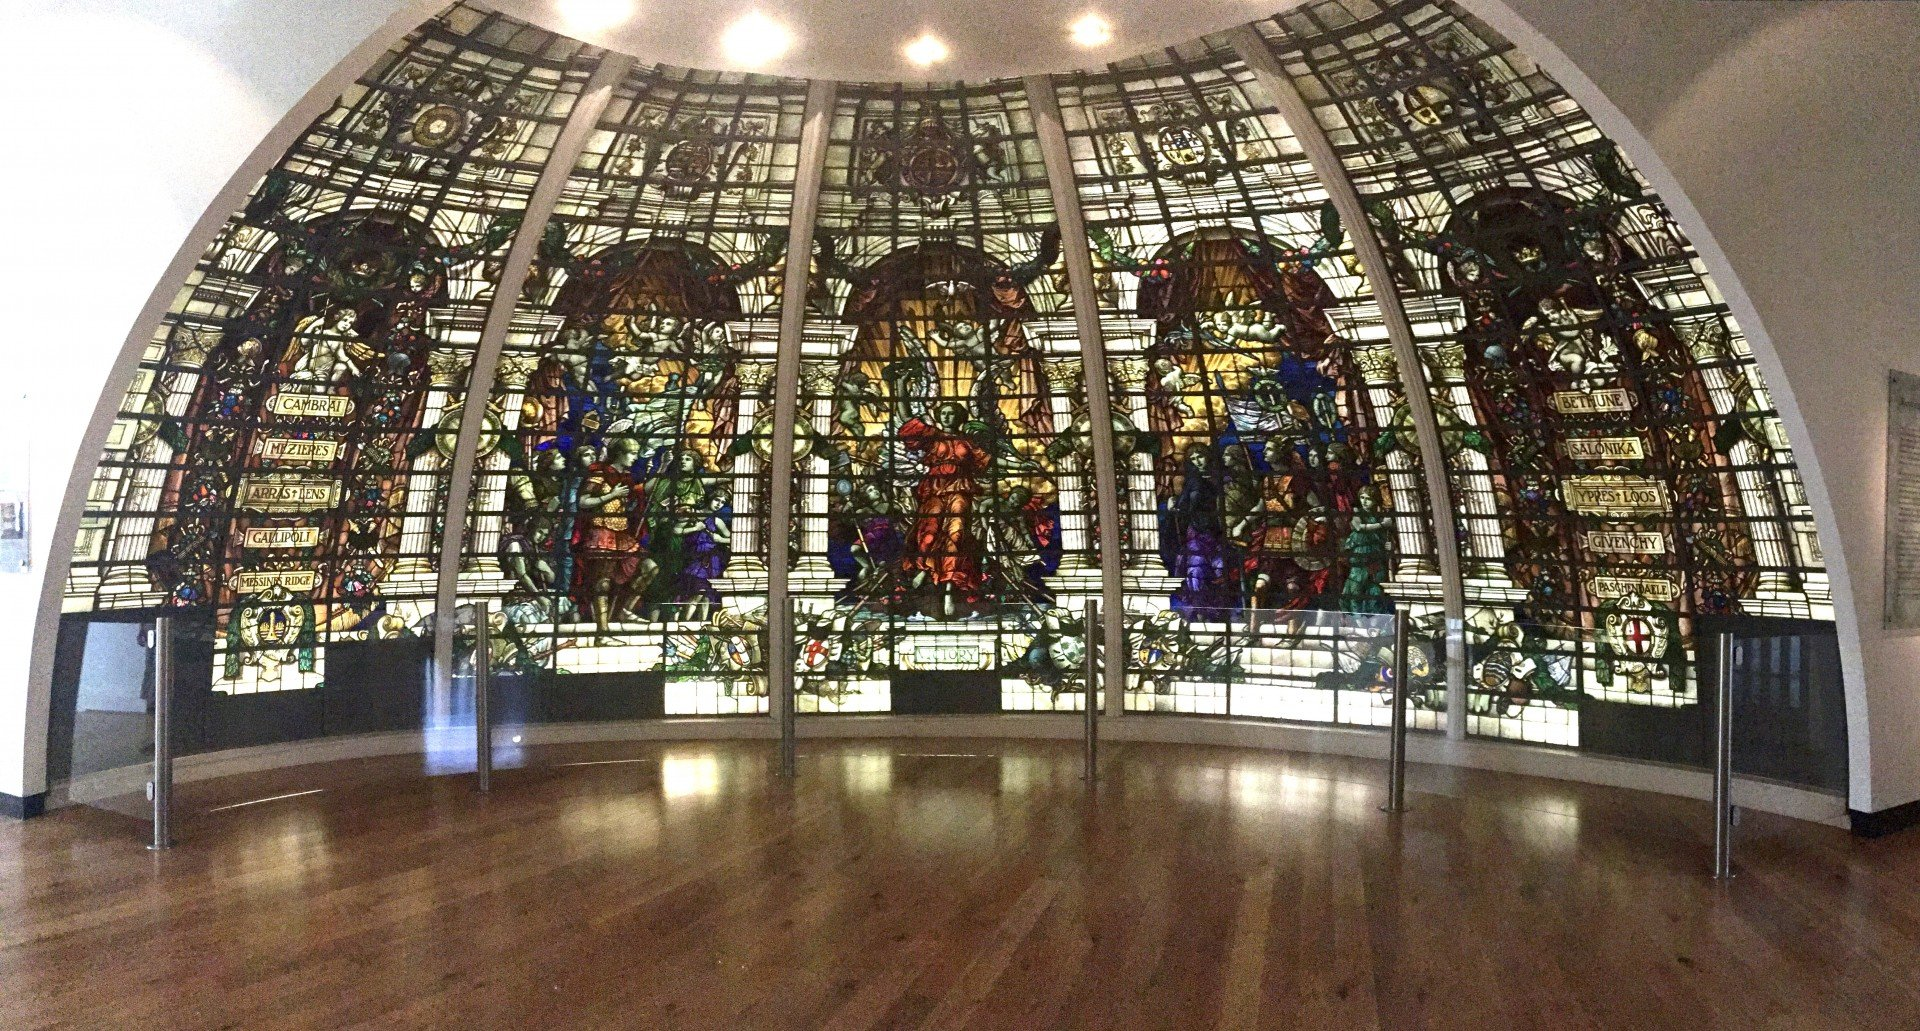 Baltic Exchange London Stained Glass Window